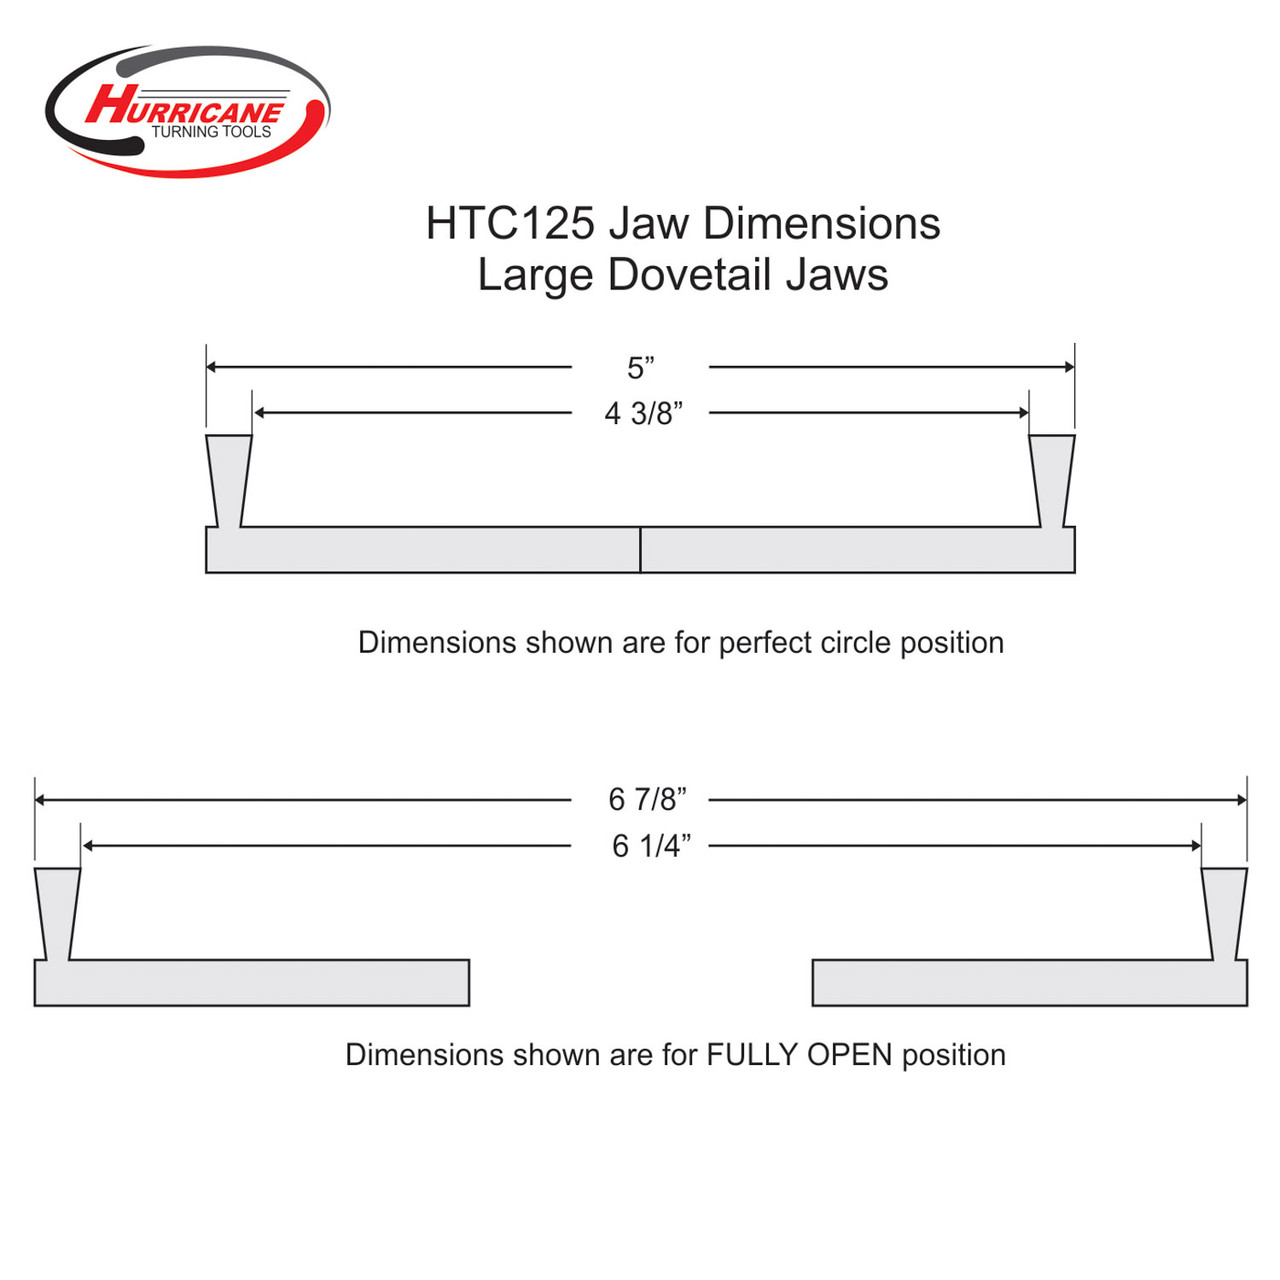 Hurricane Large Dovetail Jaws for the HTC125 Chuck